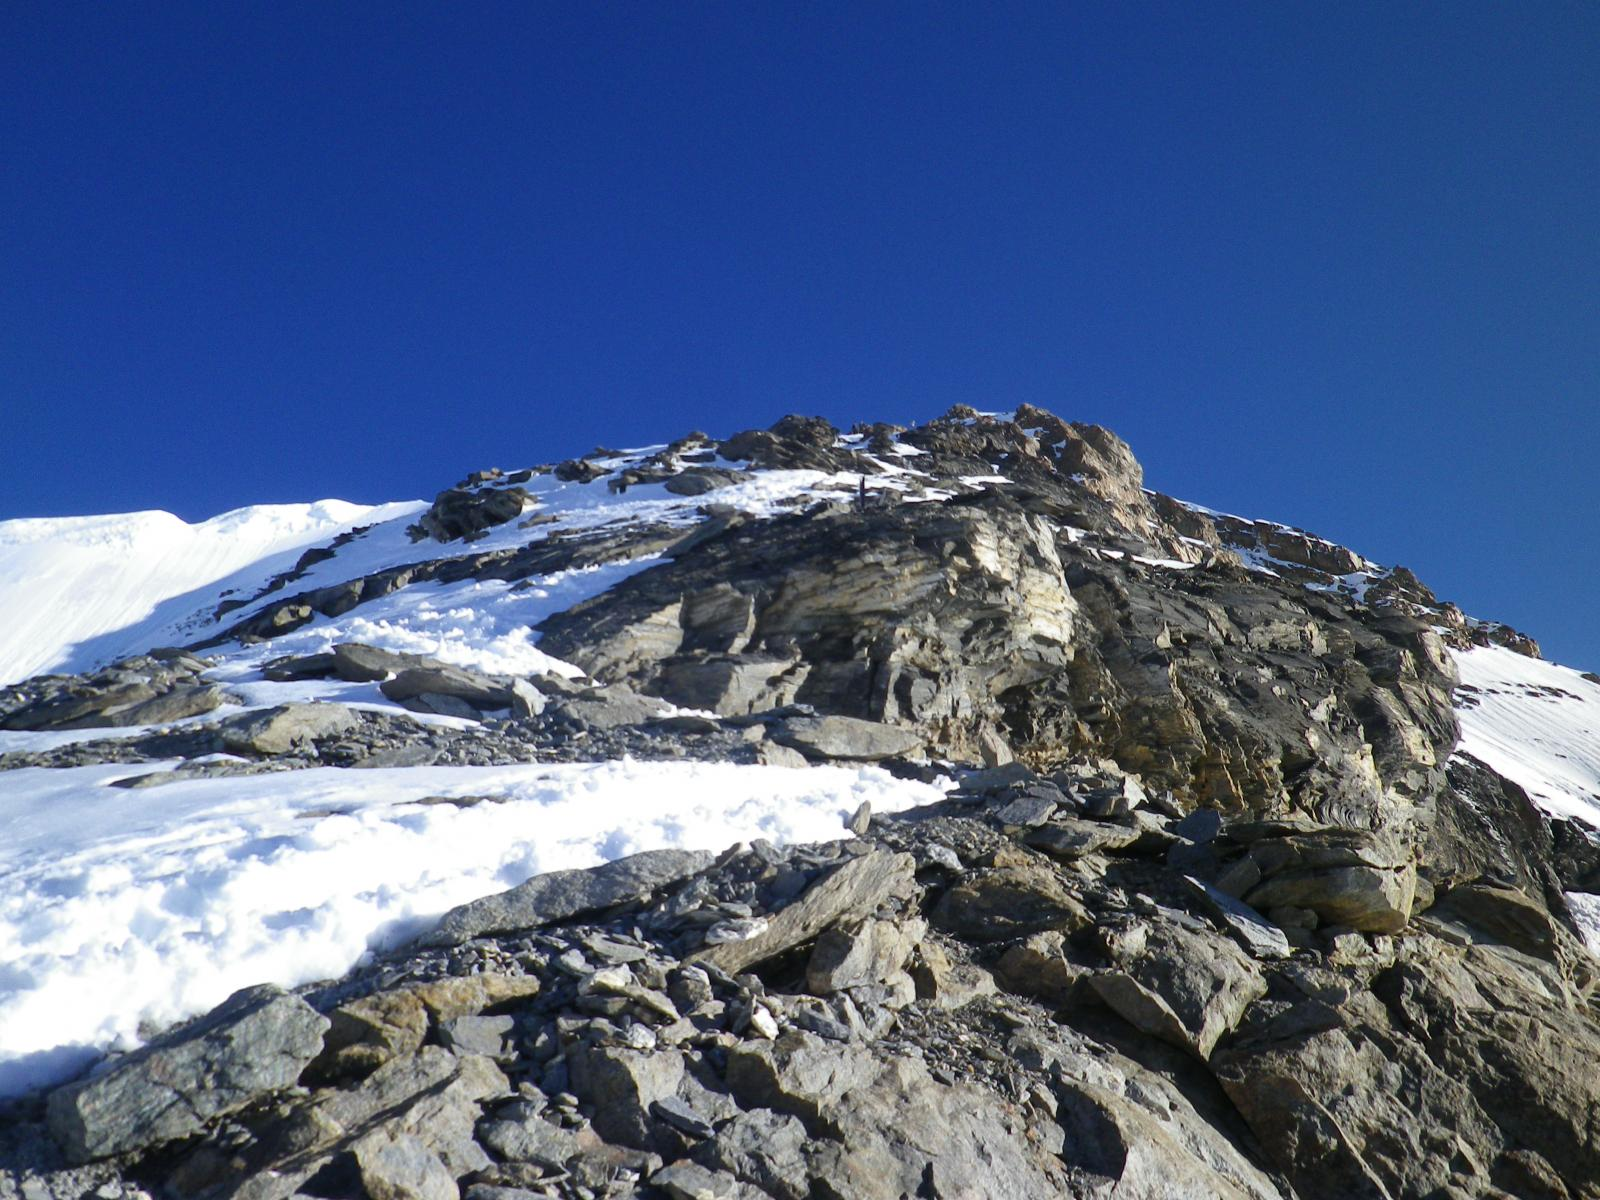 neve sulle rocce basse